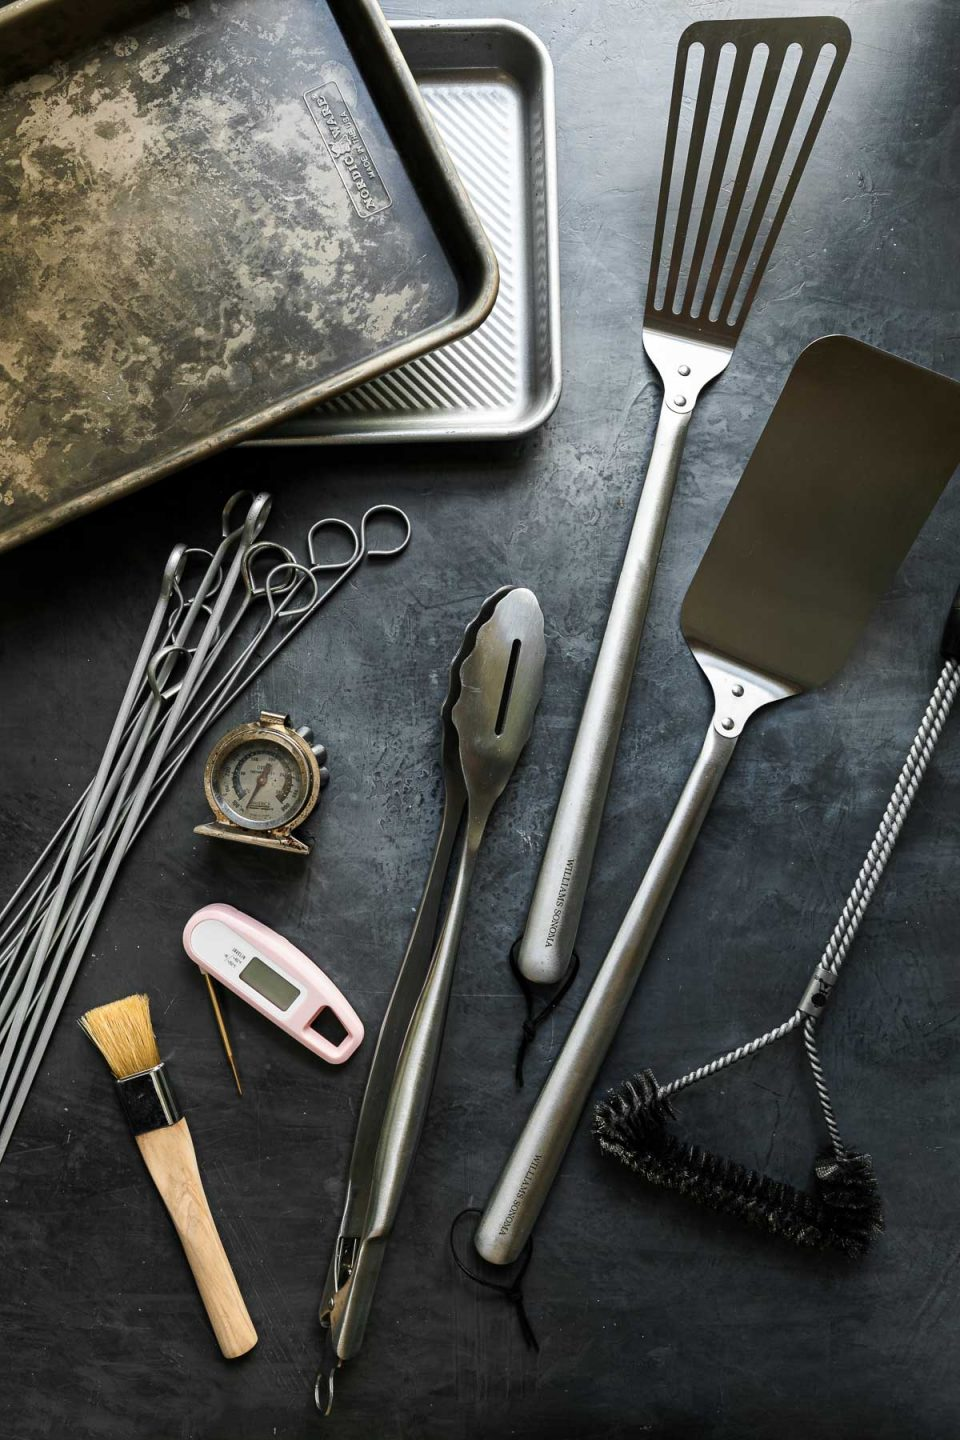 Grill tools arranged on a black surface: quarter sheet pans, stainless steel skewers, oven thermometer, instant read thermometer, pastry brush, grill tongs, grill spatula, grill brush.